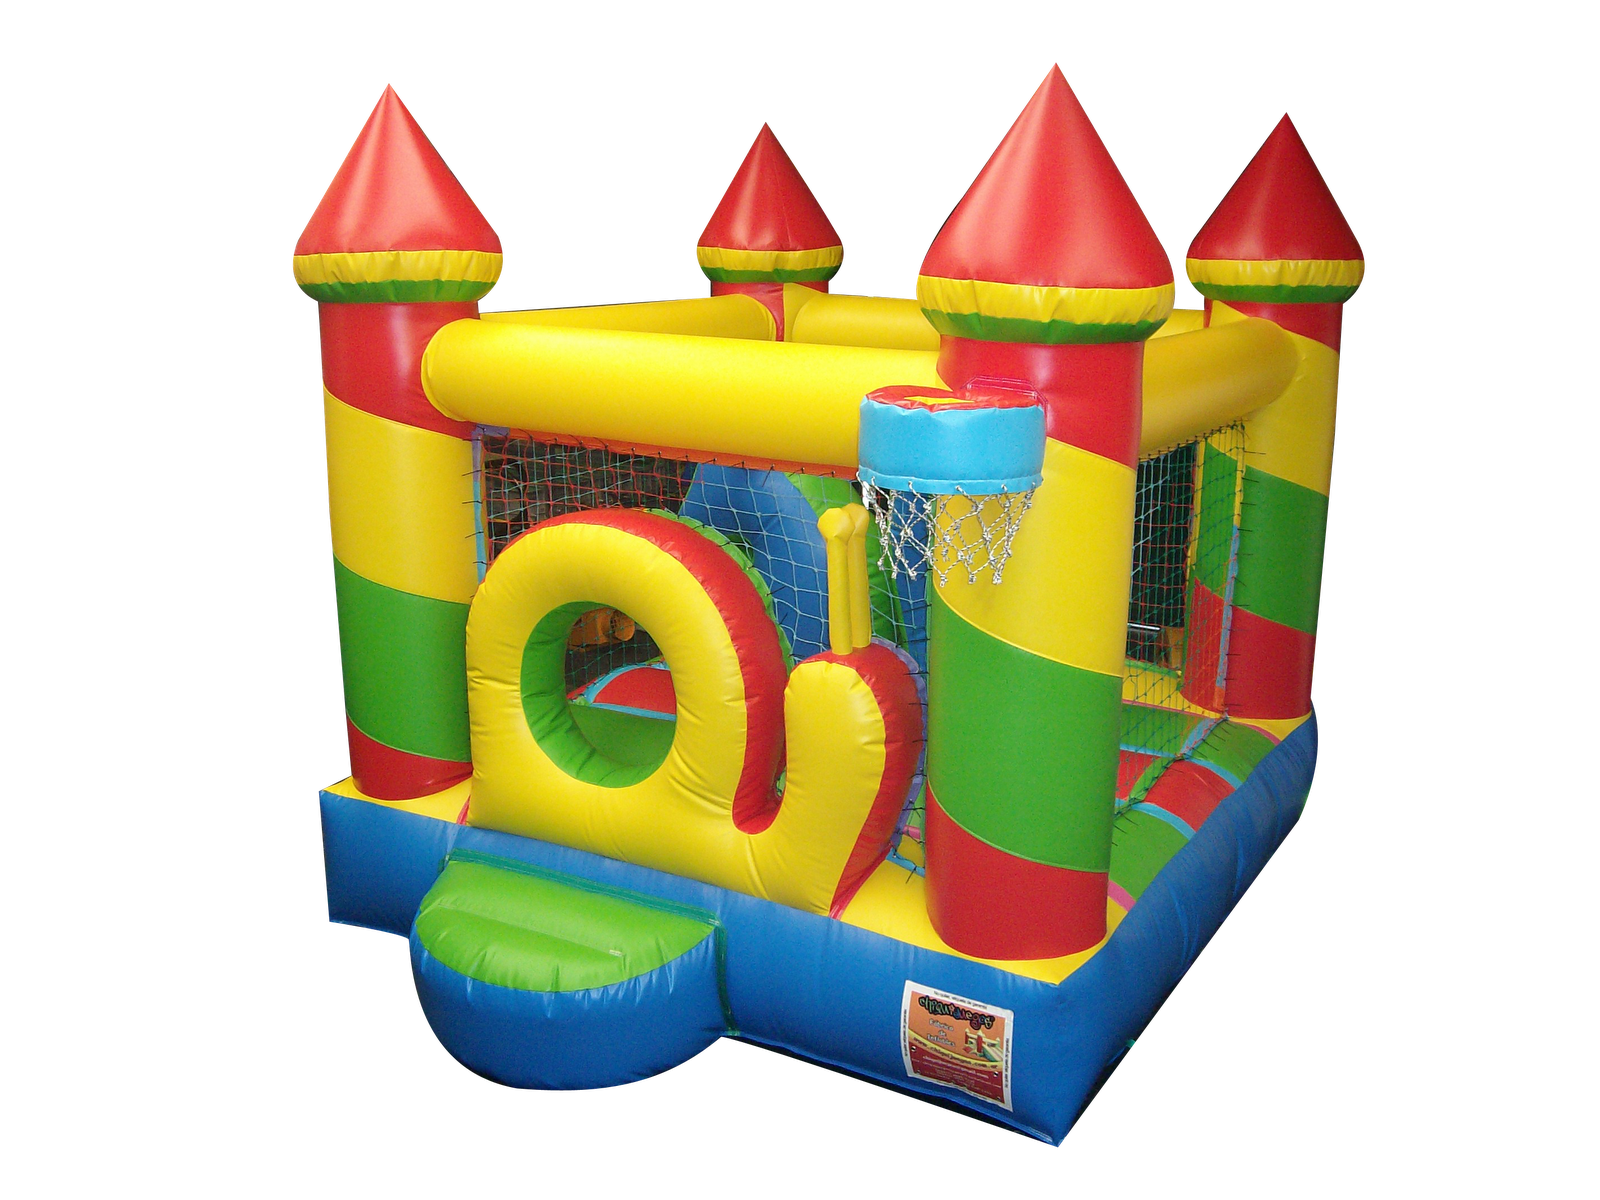 brincolin inflable caramelo 3 x 4.